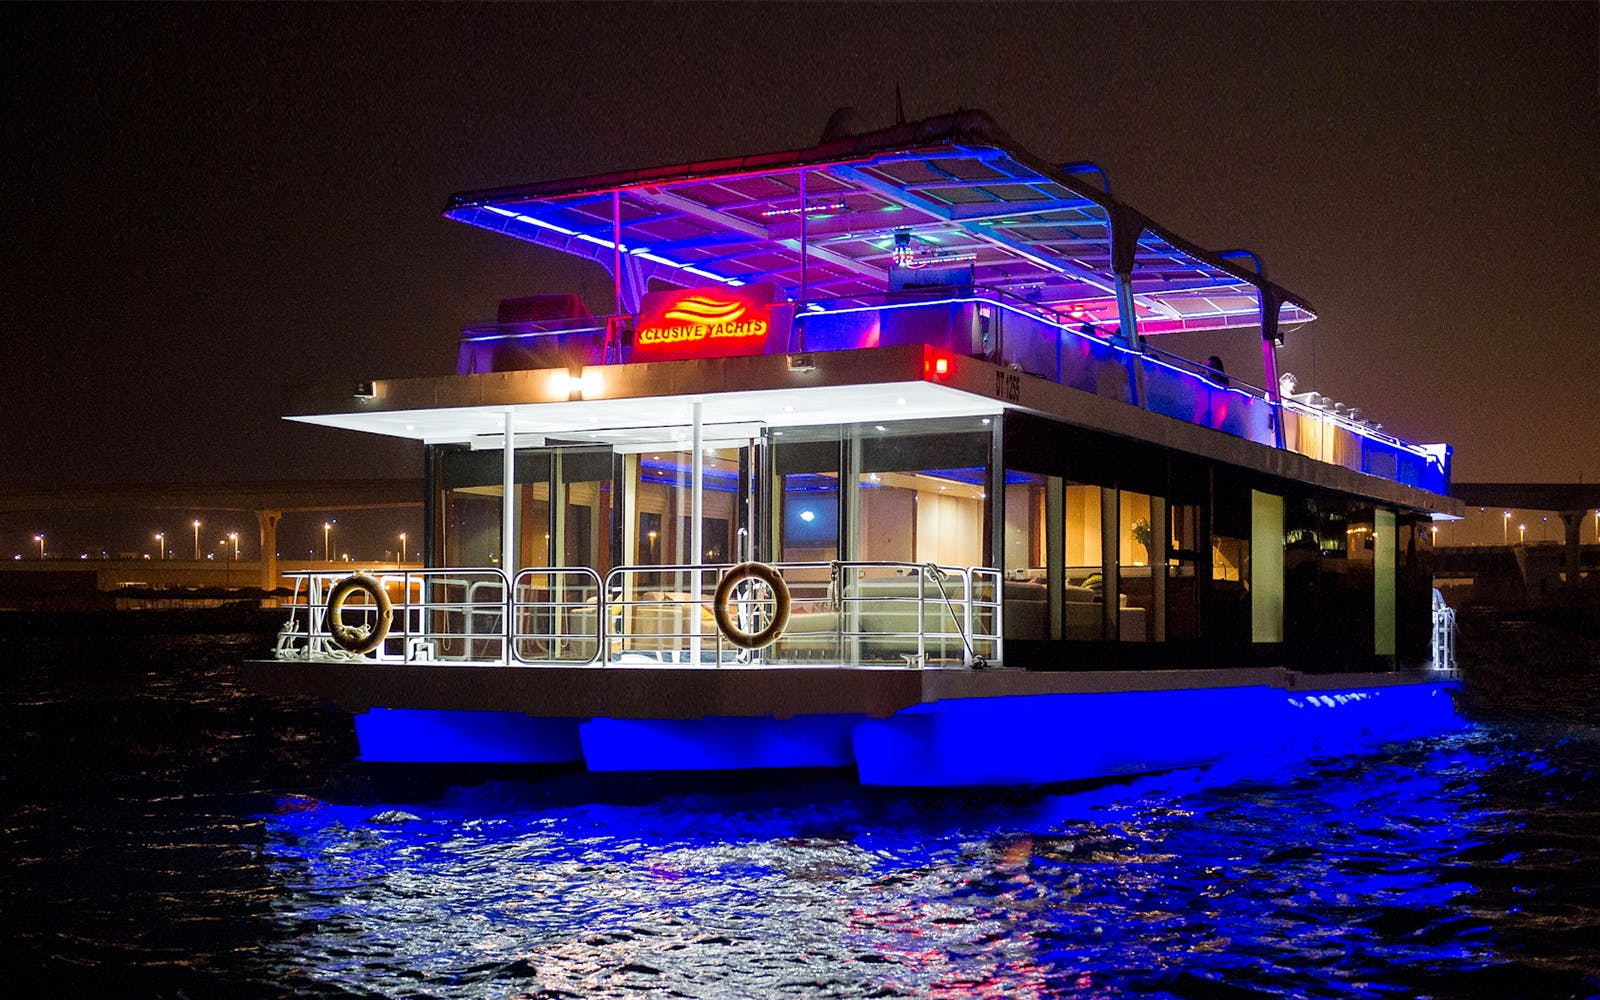 Marina Sunset Cruise with Live Music